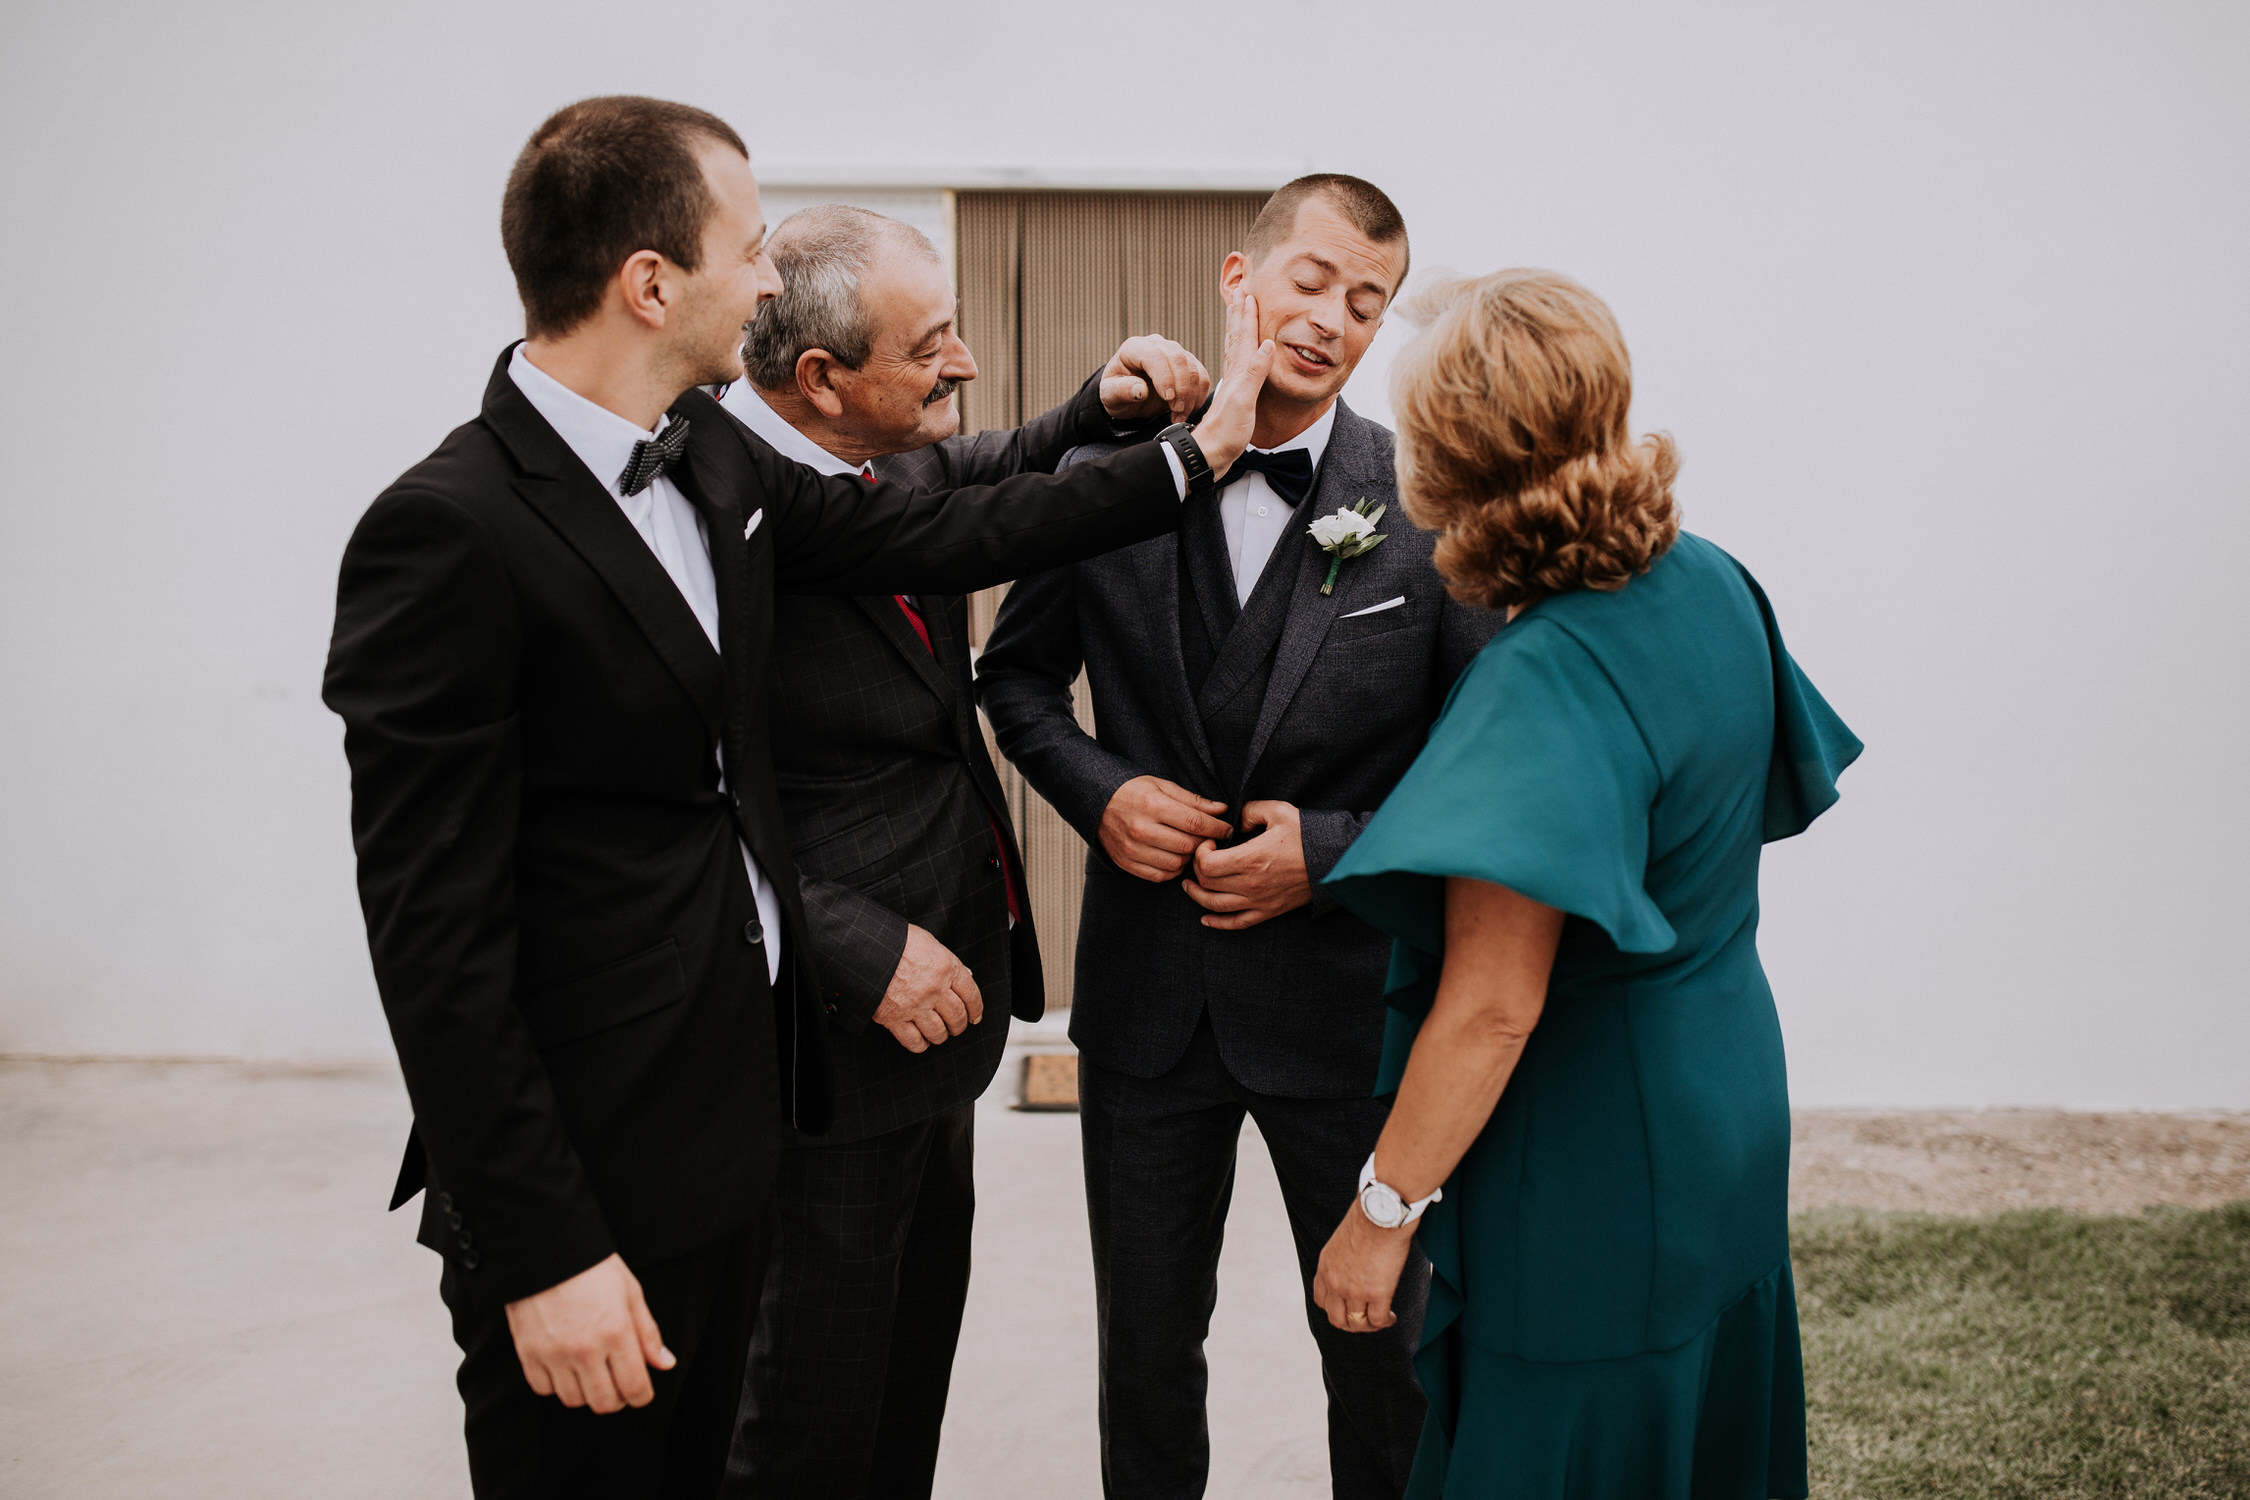 004 Filipe Santiago Fotografia Casamento wedding photographer near venue Lisbon Malveira Ericeira best Sintra Portugal destination groom family